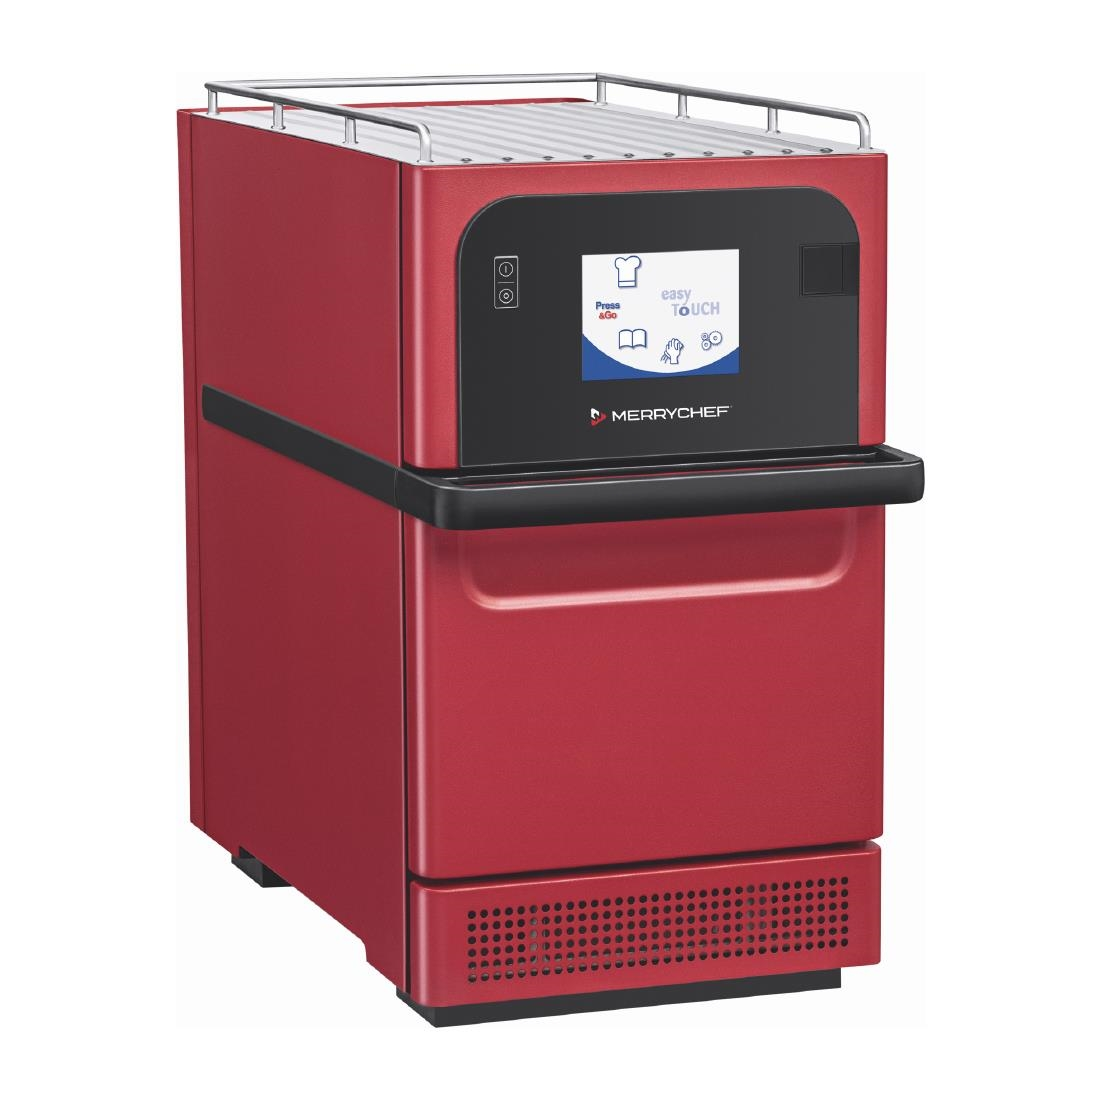 Merrychef Eikon E2S HP 2kW High Speed Oven Single Phase Red